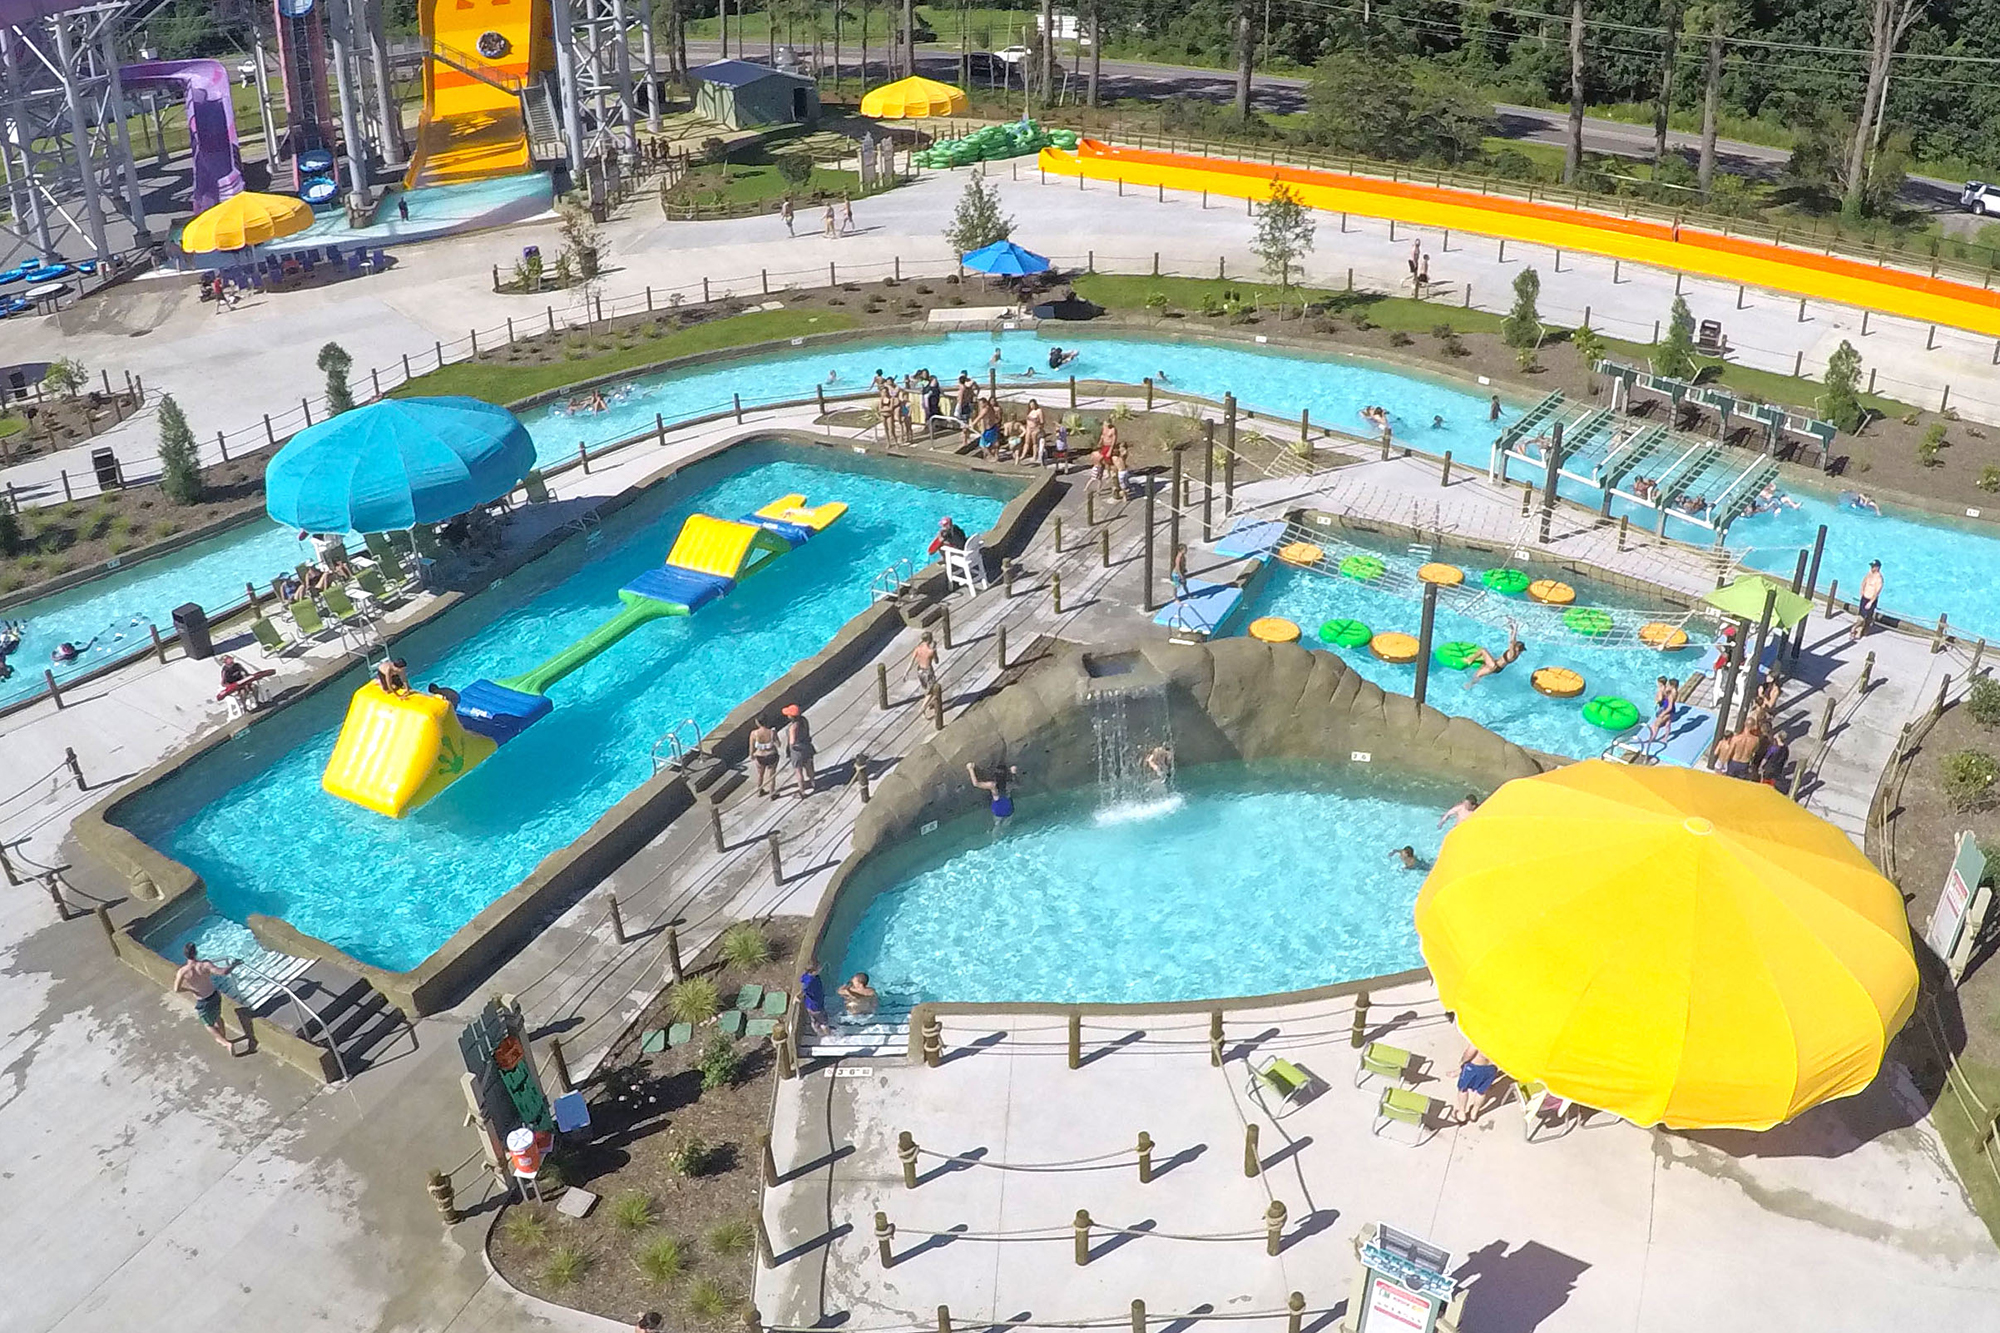 ADG Adventure Lagoon H2OBX Waterpark